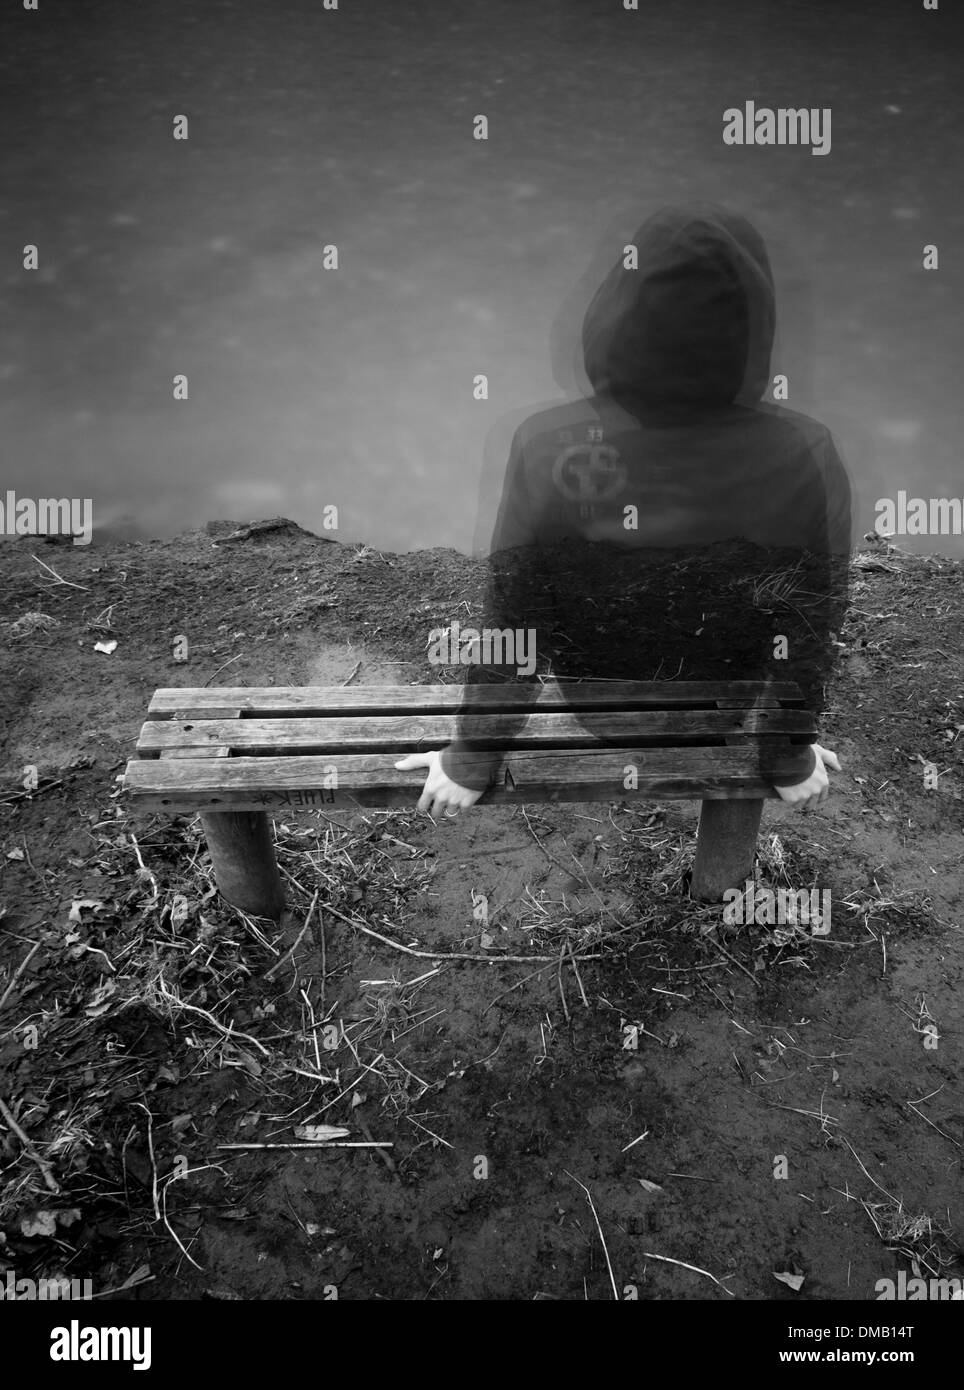 Man sitting alone on a bench - Stock Image